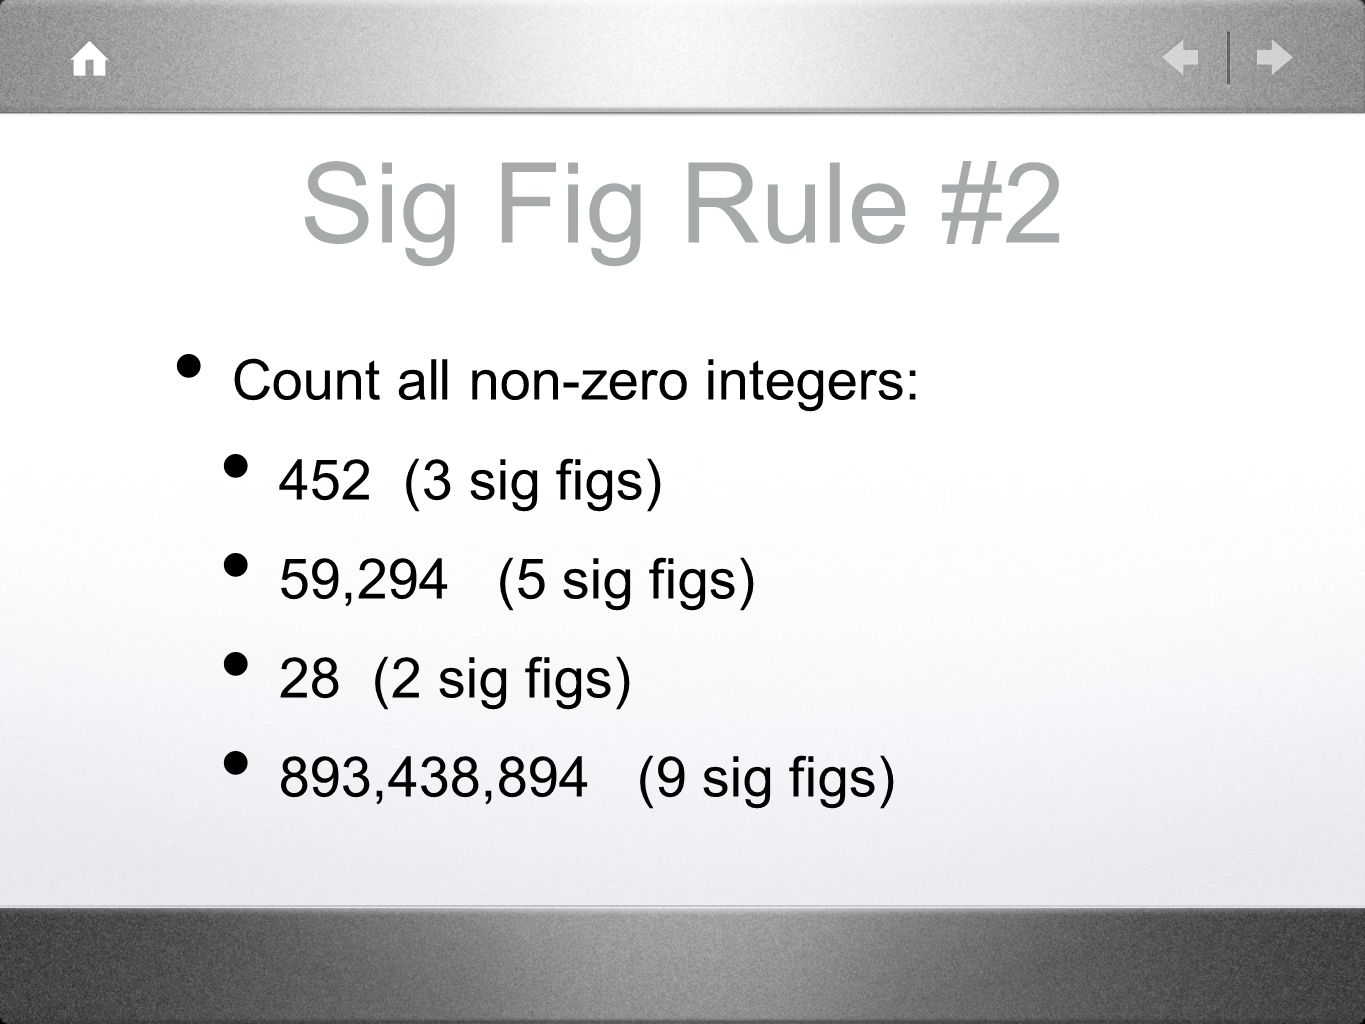 Sig Fig Rule #2 Count all non-zero integers: 452 (3 sig figs) 59,294 (5 sig figs) 28 (2 sig figs) 893,438,894 (9 sig figs)